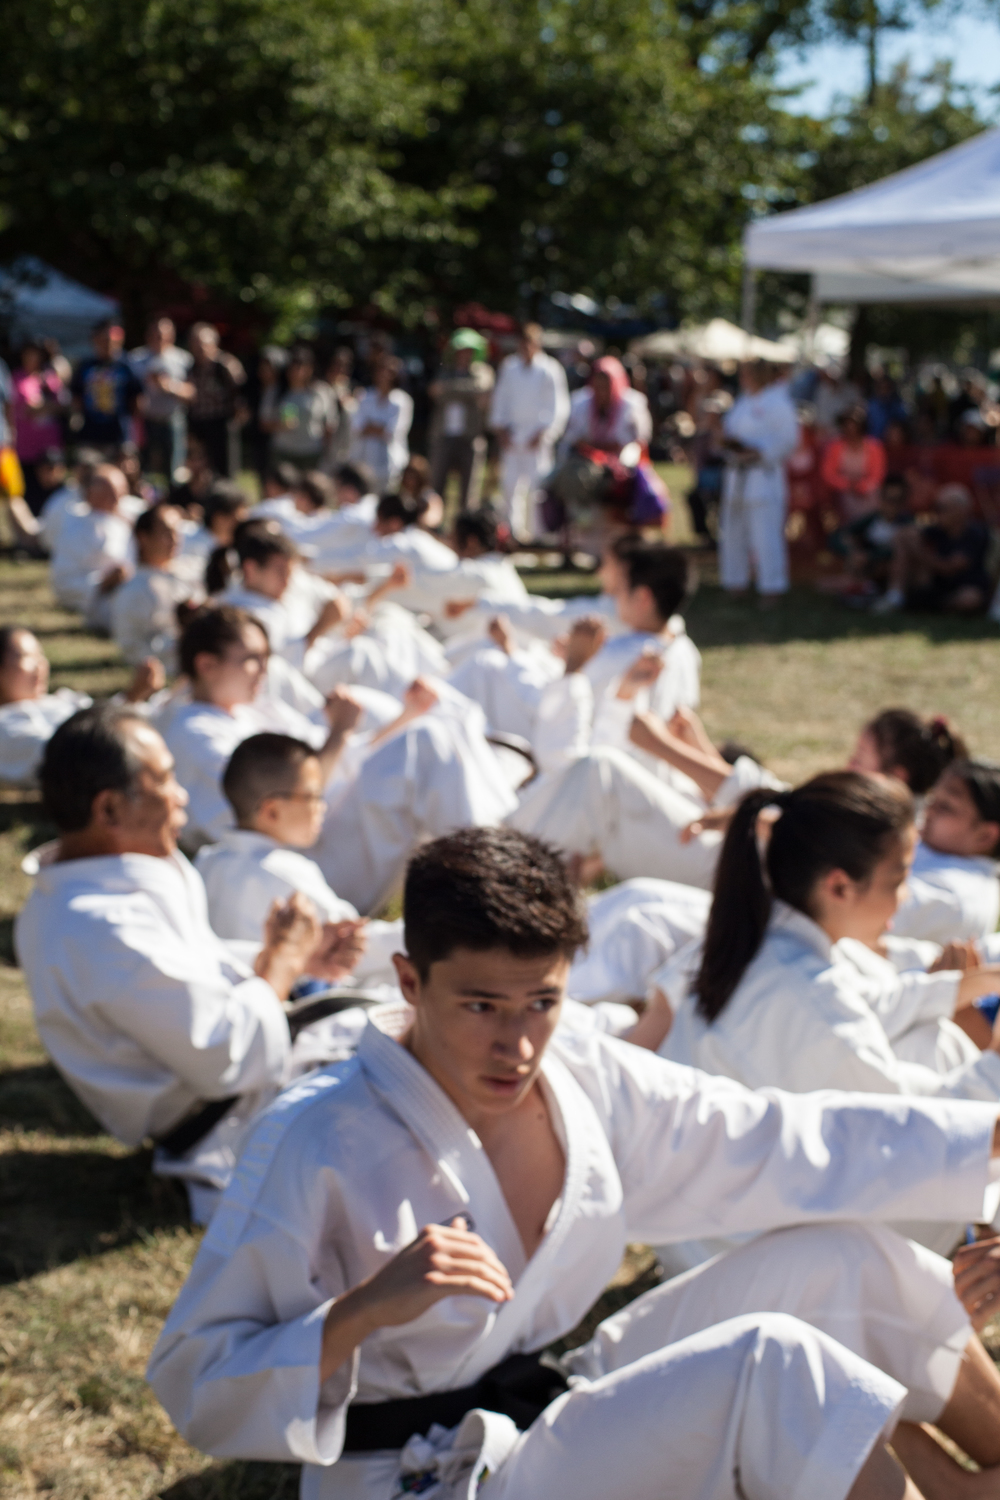 Shito Ryu Karate demonstration.